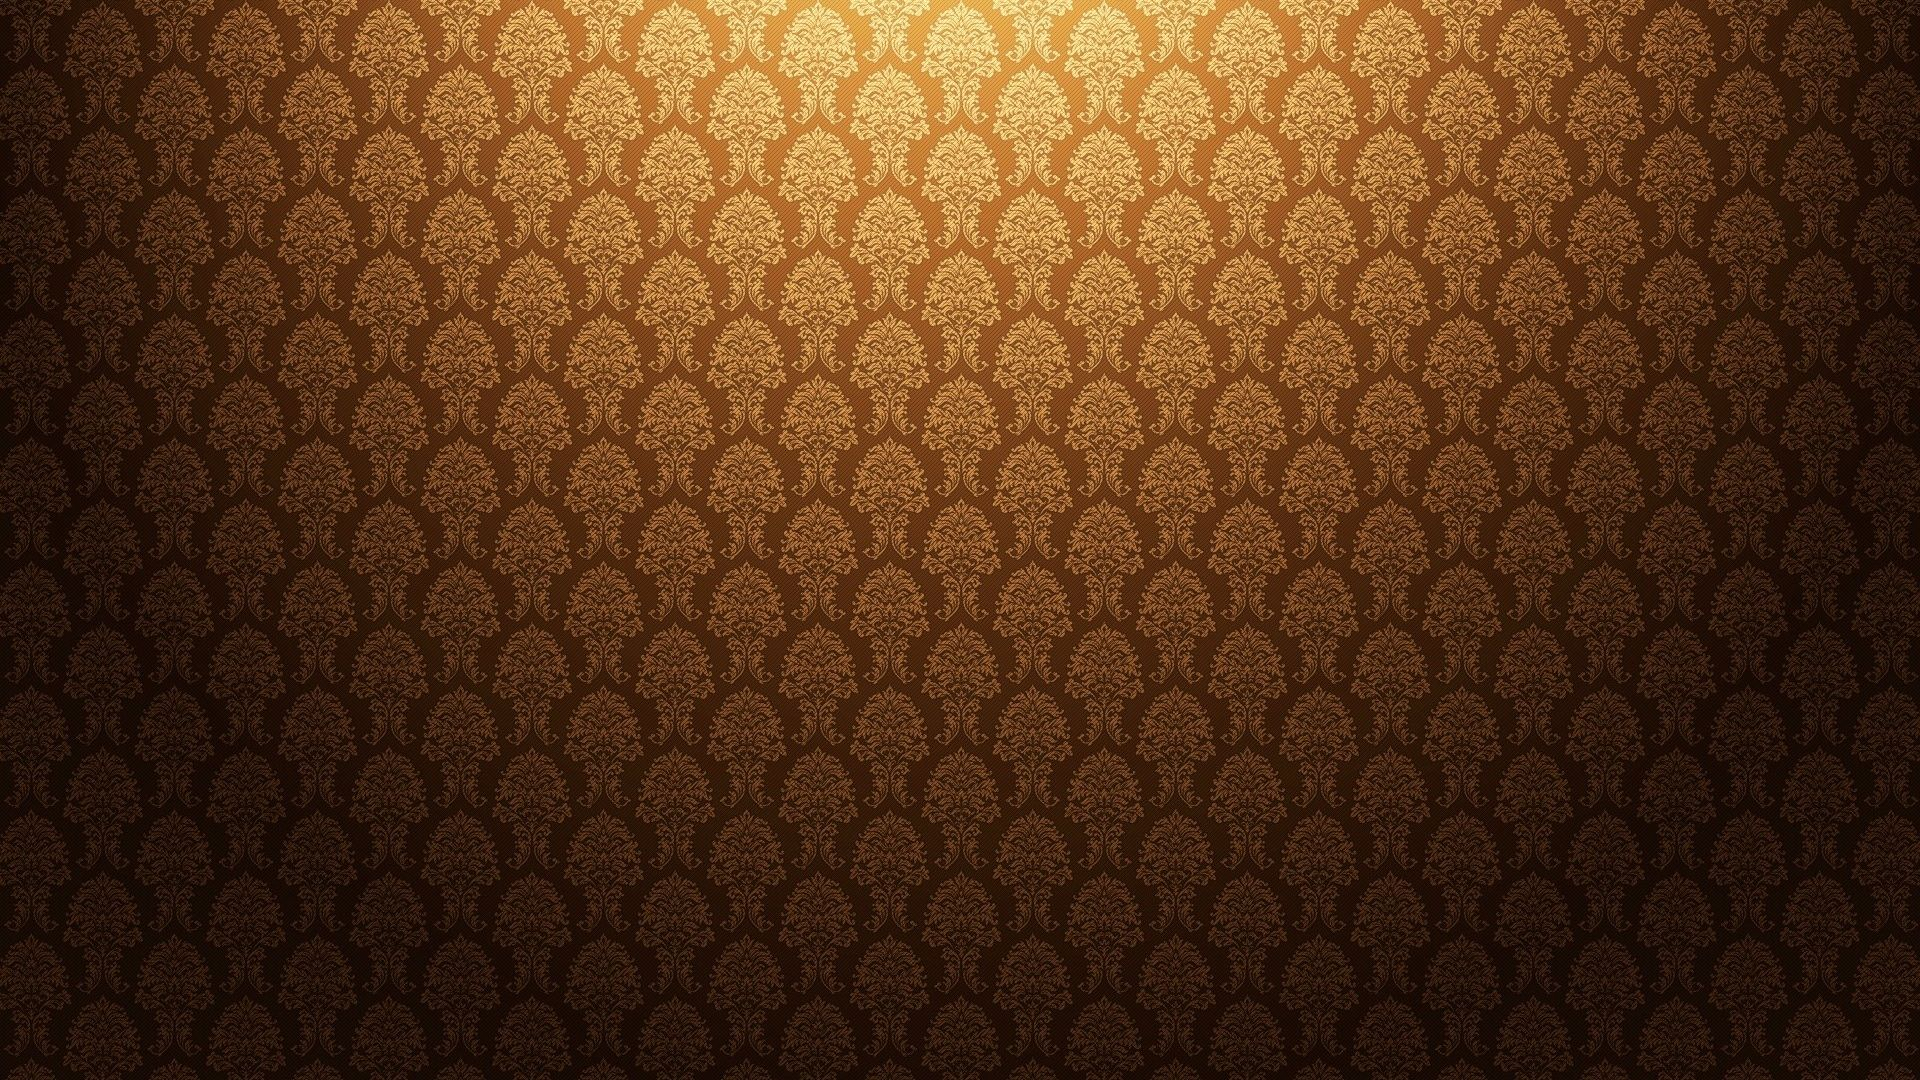 Luxury wallpaper background